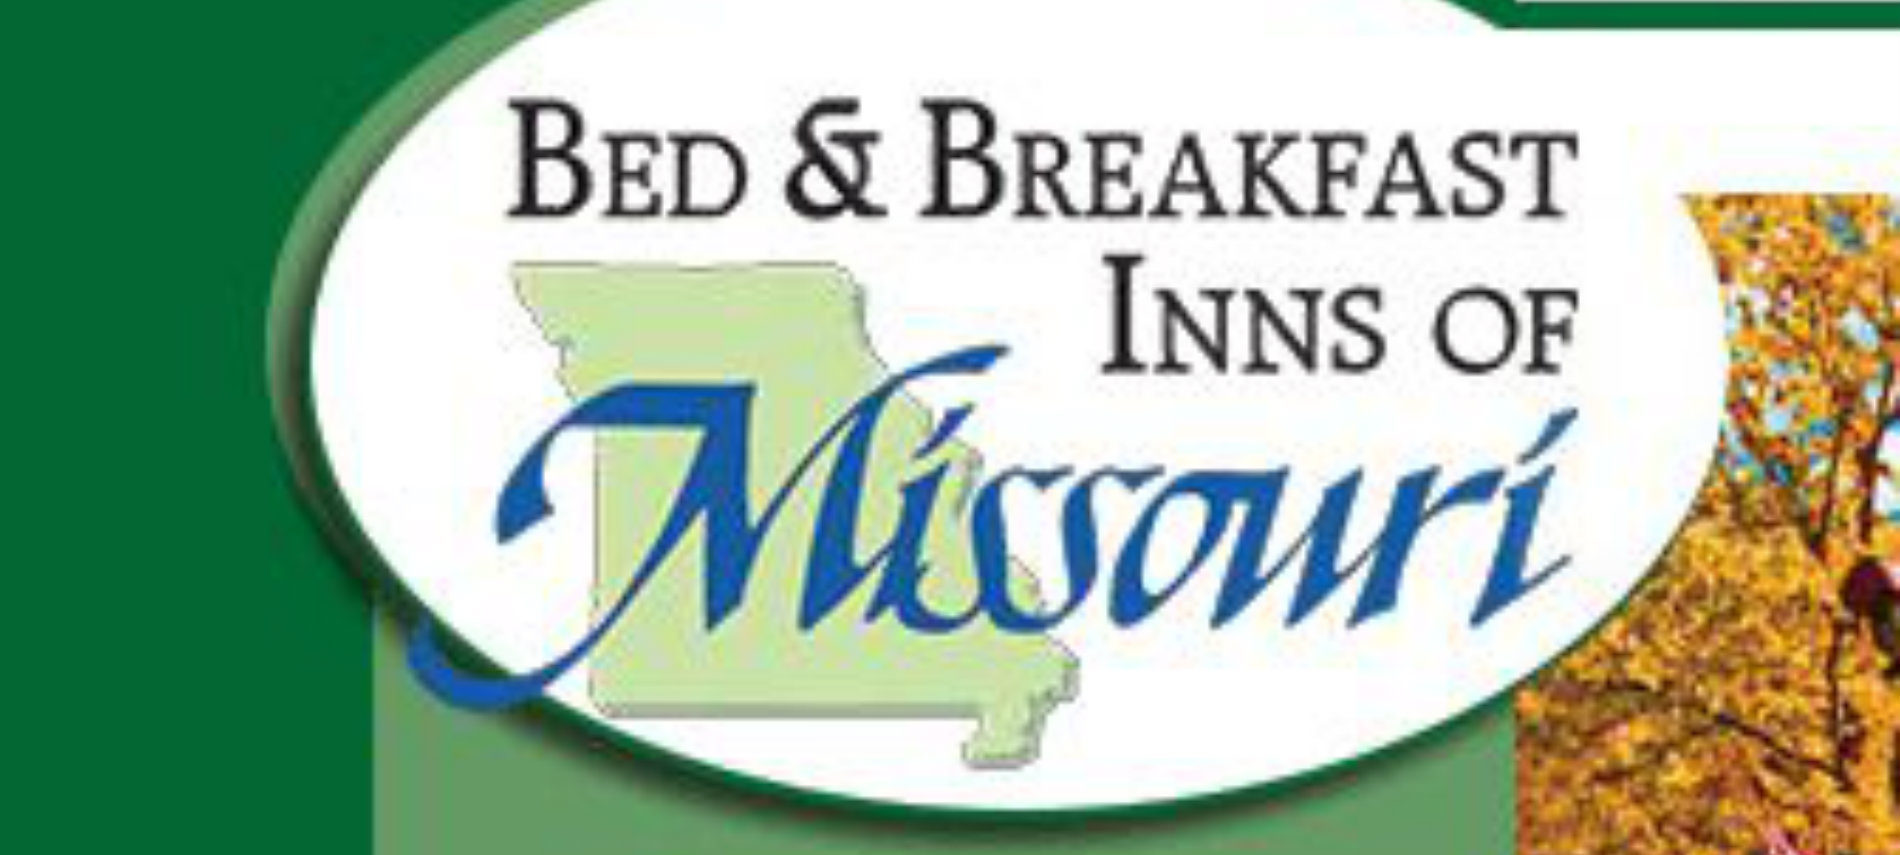 The logo of the Bed & Breakfast Association of Missouri